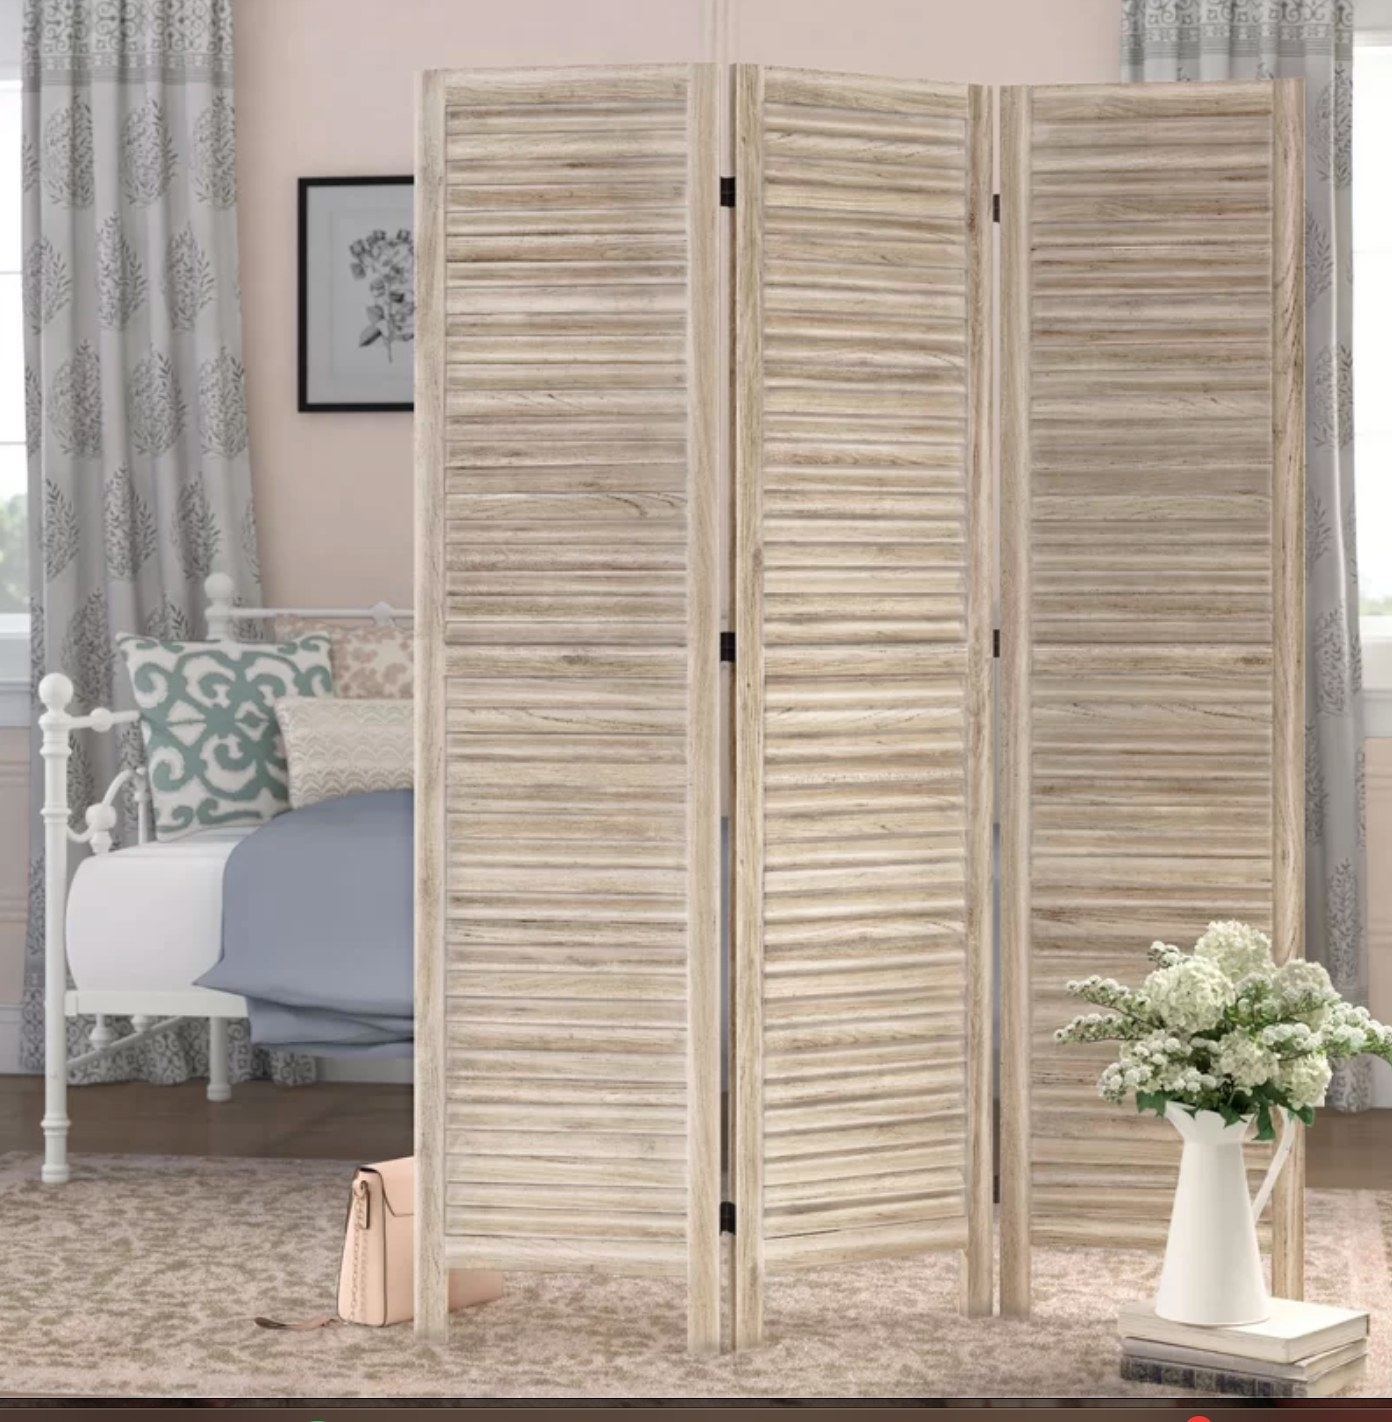 The room divider in natural